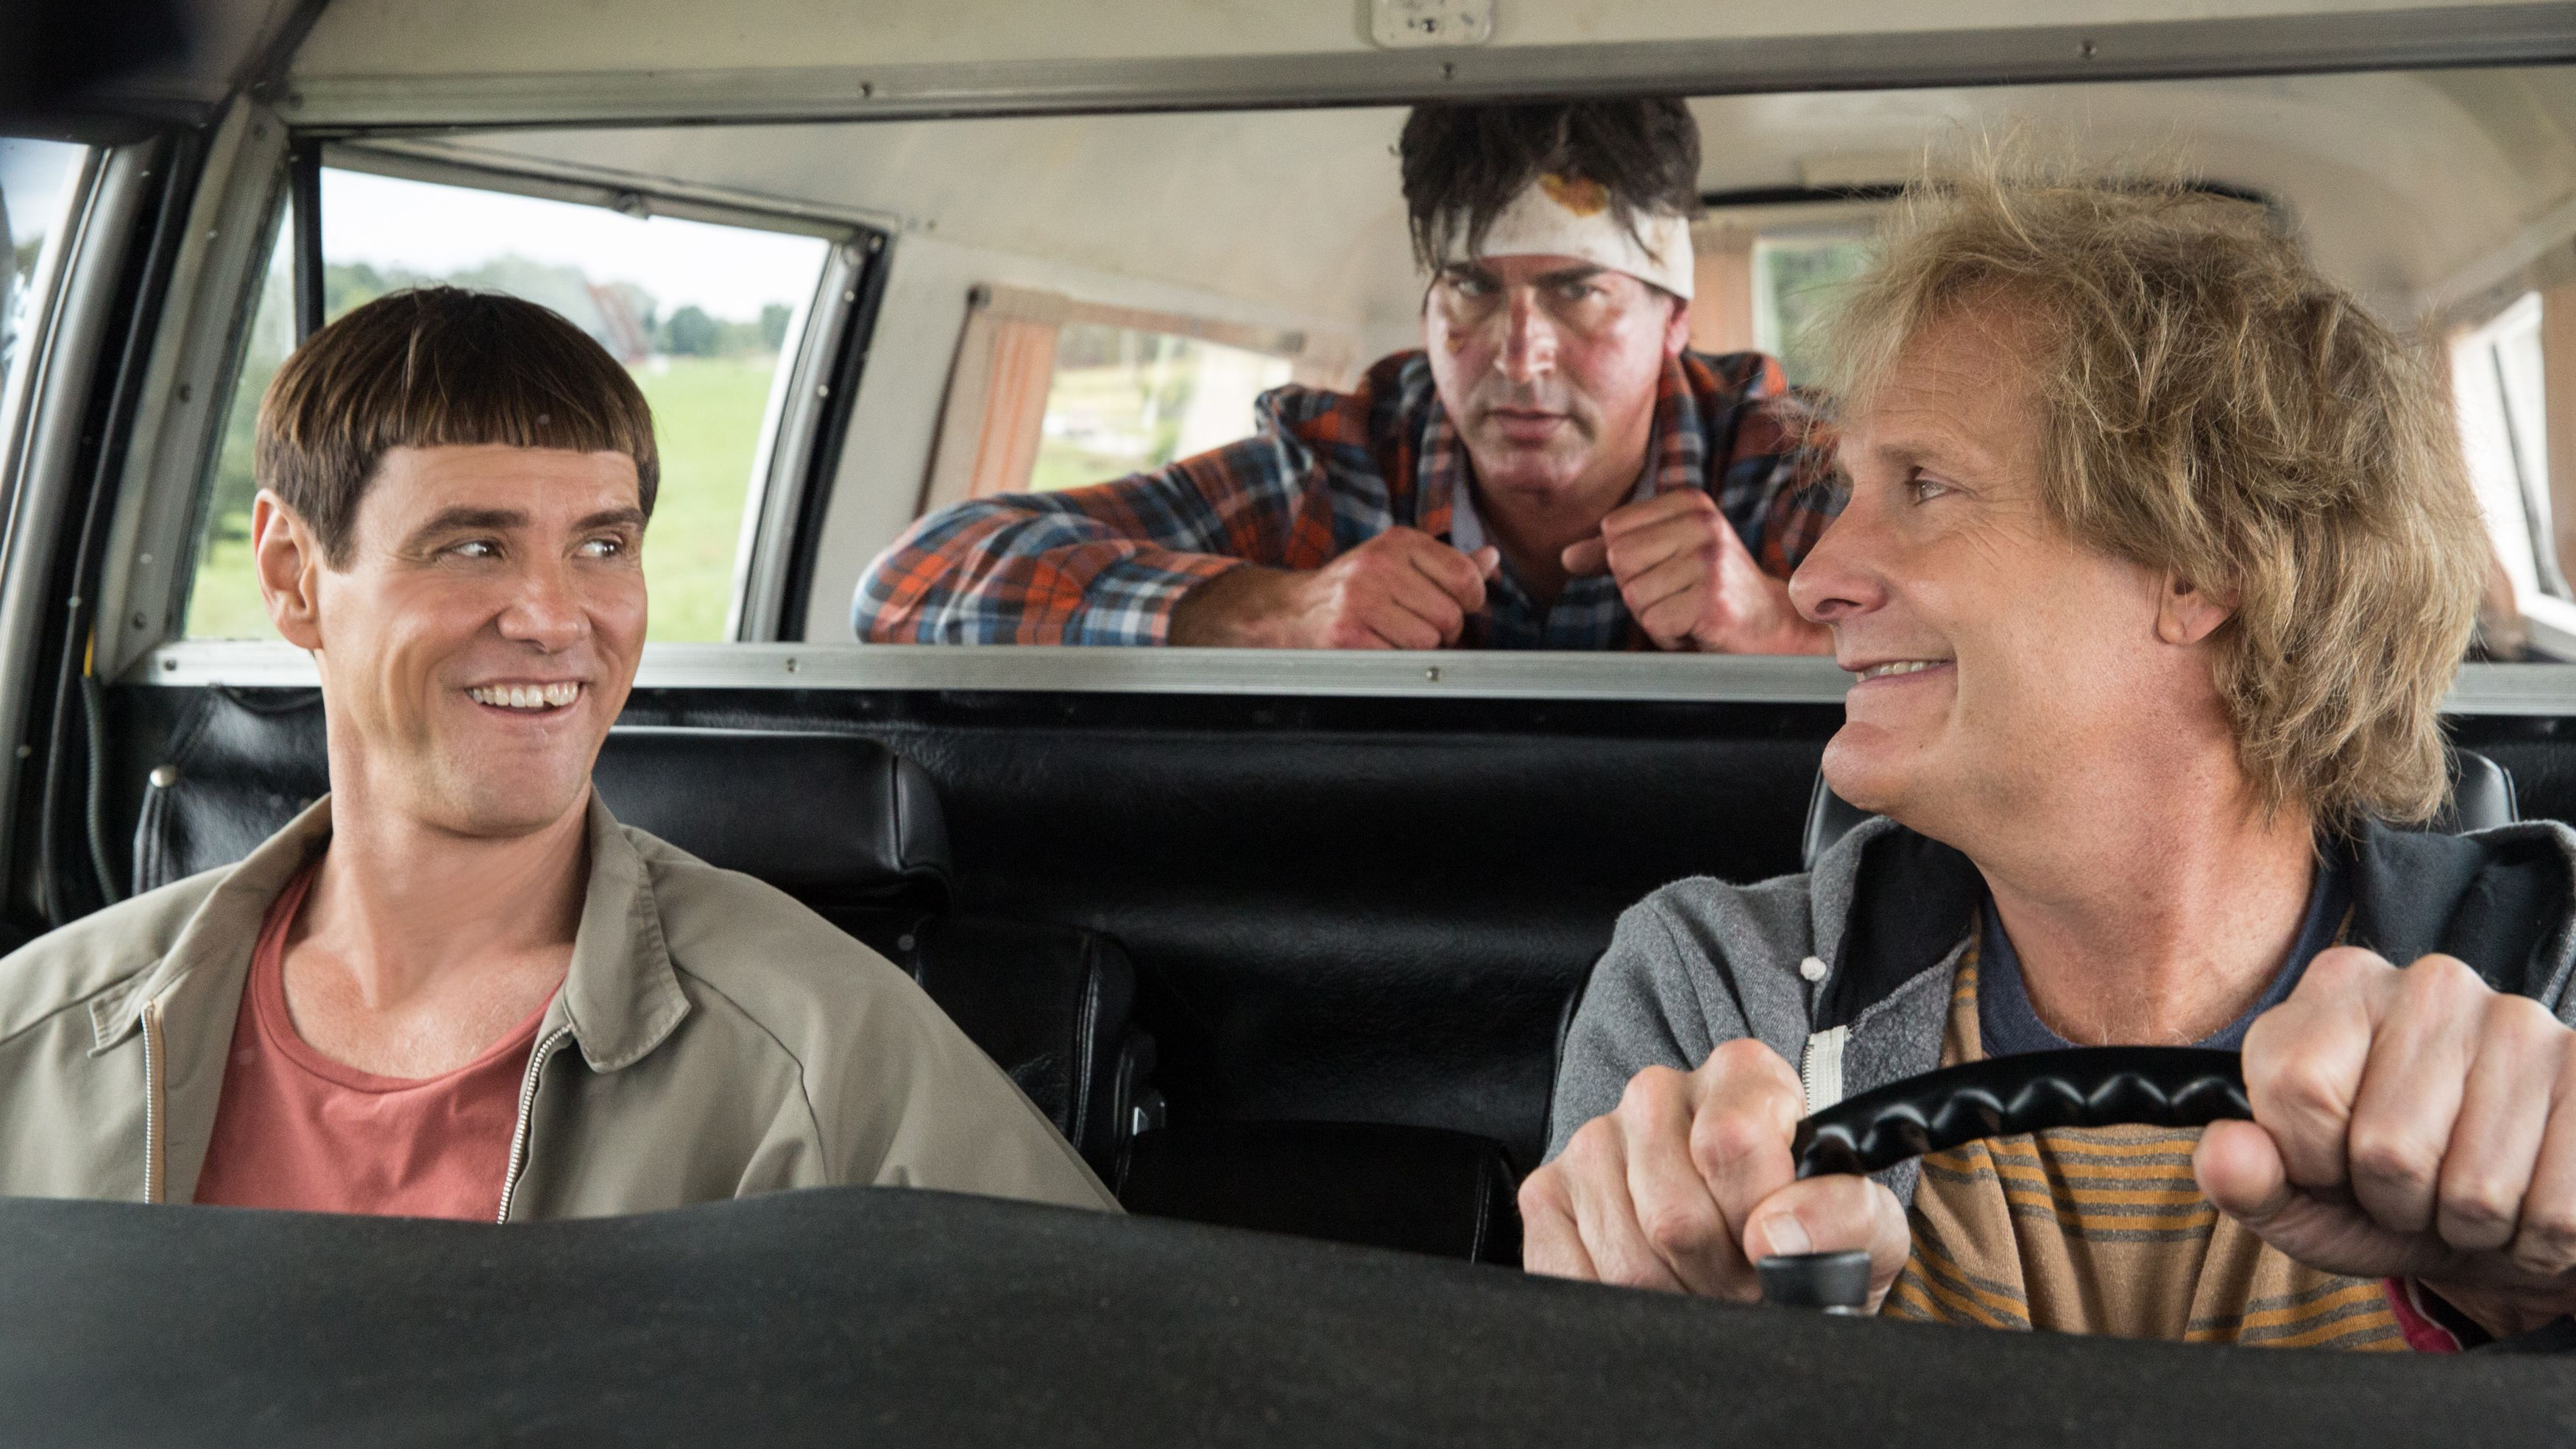 http://cdn.collider.com/wp-content/uploads/jim-carrey-jeff-daniels-rob-riggle-dumb-and-dumber-to.jpg